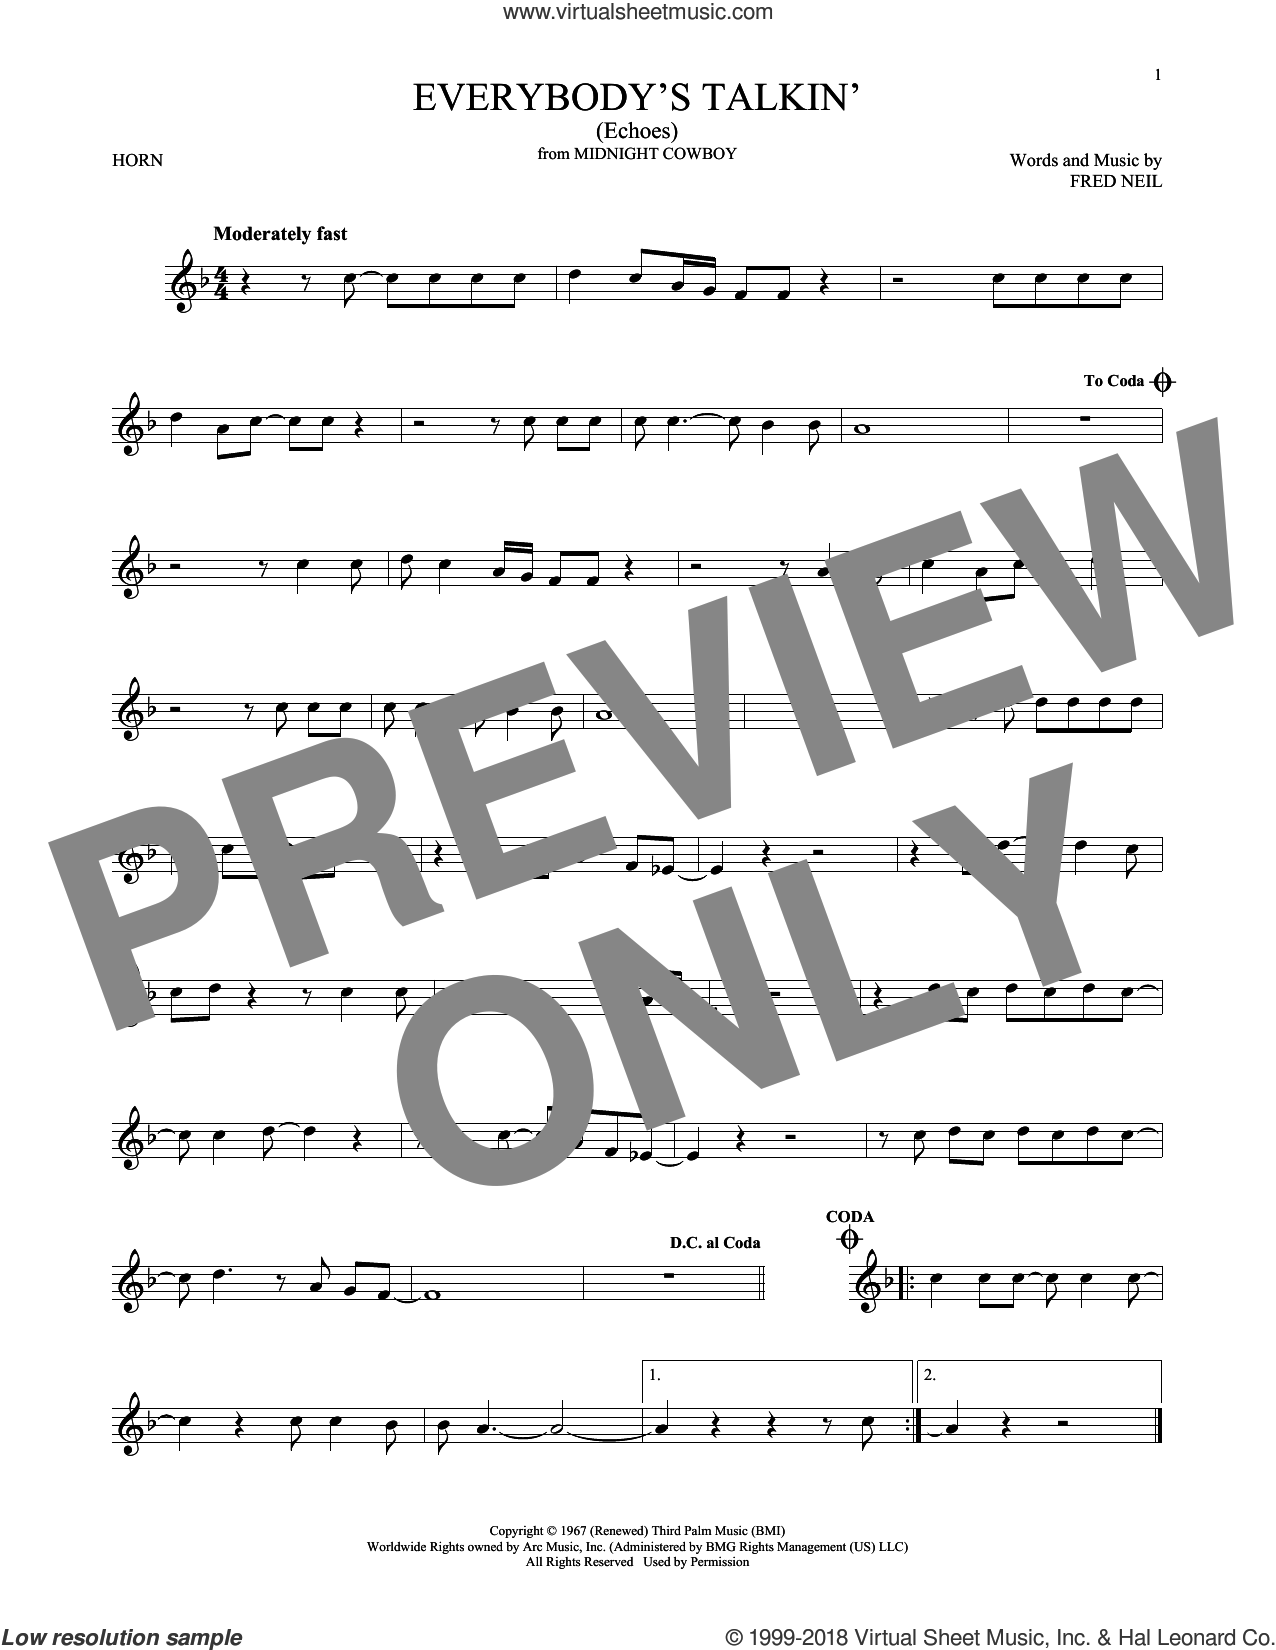 Everybody's Talkin' (Echoes) sheet music for horn solo by Harry Nilsson and Fred Neil, intermediate skill level